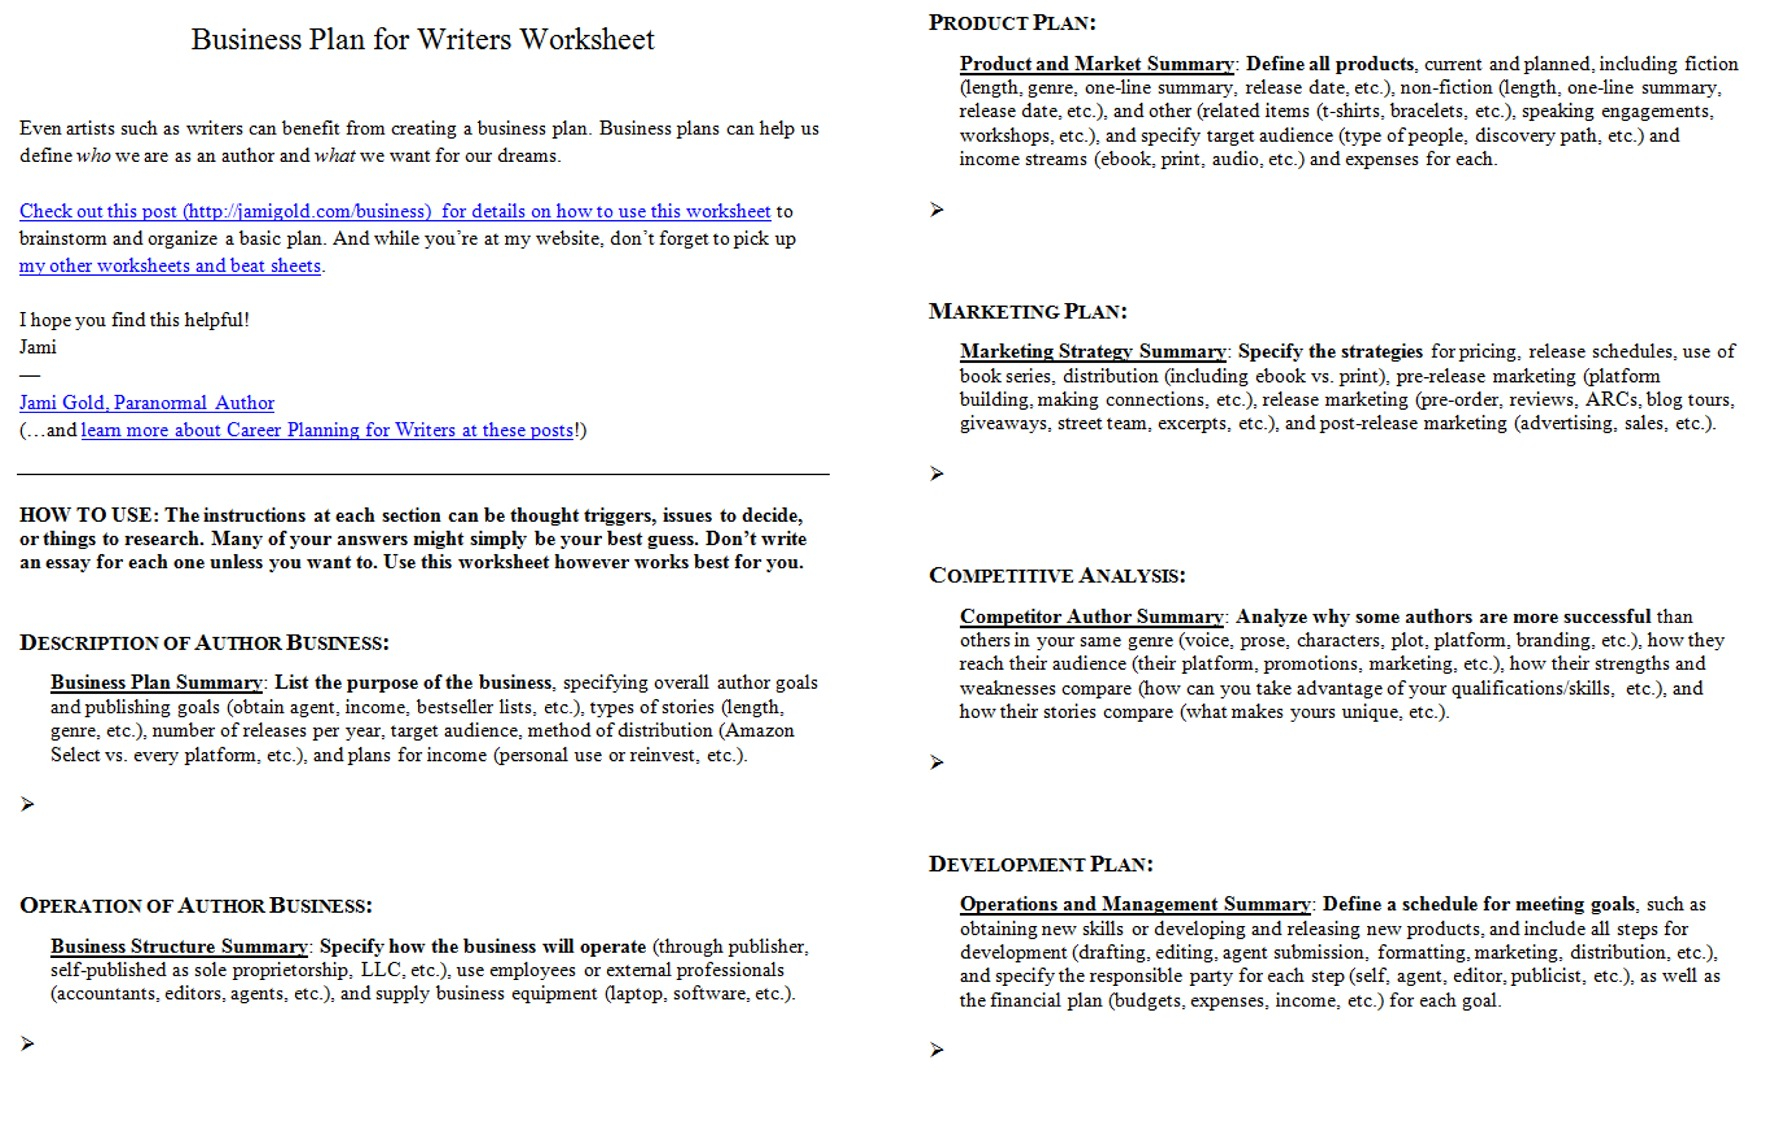 Proatmealus  Pretty Worksheets For Writers  Jami Gold Paranormal Author With Handsome Screen Shot Of Both Pages Of The Business Plan For Writers Worksheet With Delightful Acceleration Calculations Worksheet Answers Also Codominance Worksheet Blood Types Answers In Addition Simple Machines Worksheet Answers And Mr Smith Goes To Washington Worksheet As Well As Holiday Math Worksheets Additionally Dna Review Worksheet From Jamigoldcom With Proatmealus  Handsome Worksheets For Writers  Jami Gold Paranormal Author With Delightful Screen Shot Of Both Pages Of The Business Plan For Writers Worksheet And Pretty Acceleration Calculations Worksheet Answers Also Codominance Worksheet Blood Types Answers In Addition Simple Machines Worksheet Answers From Jamigoldcom